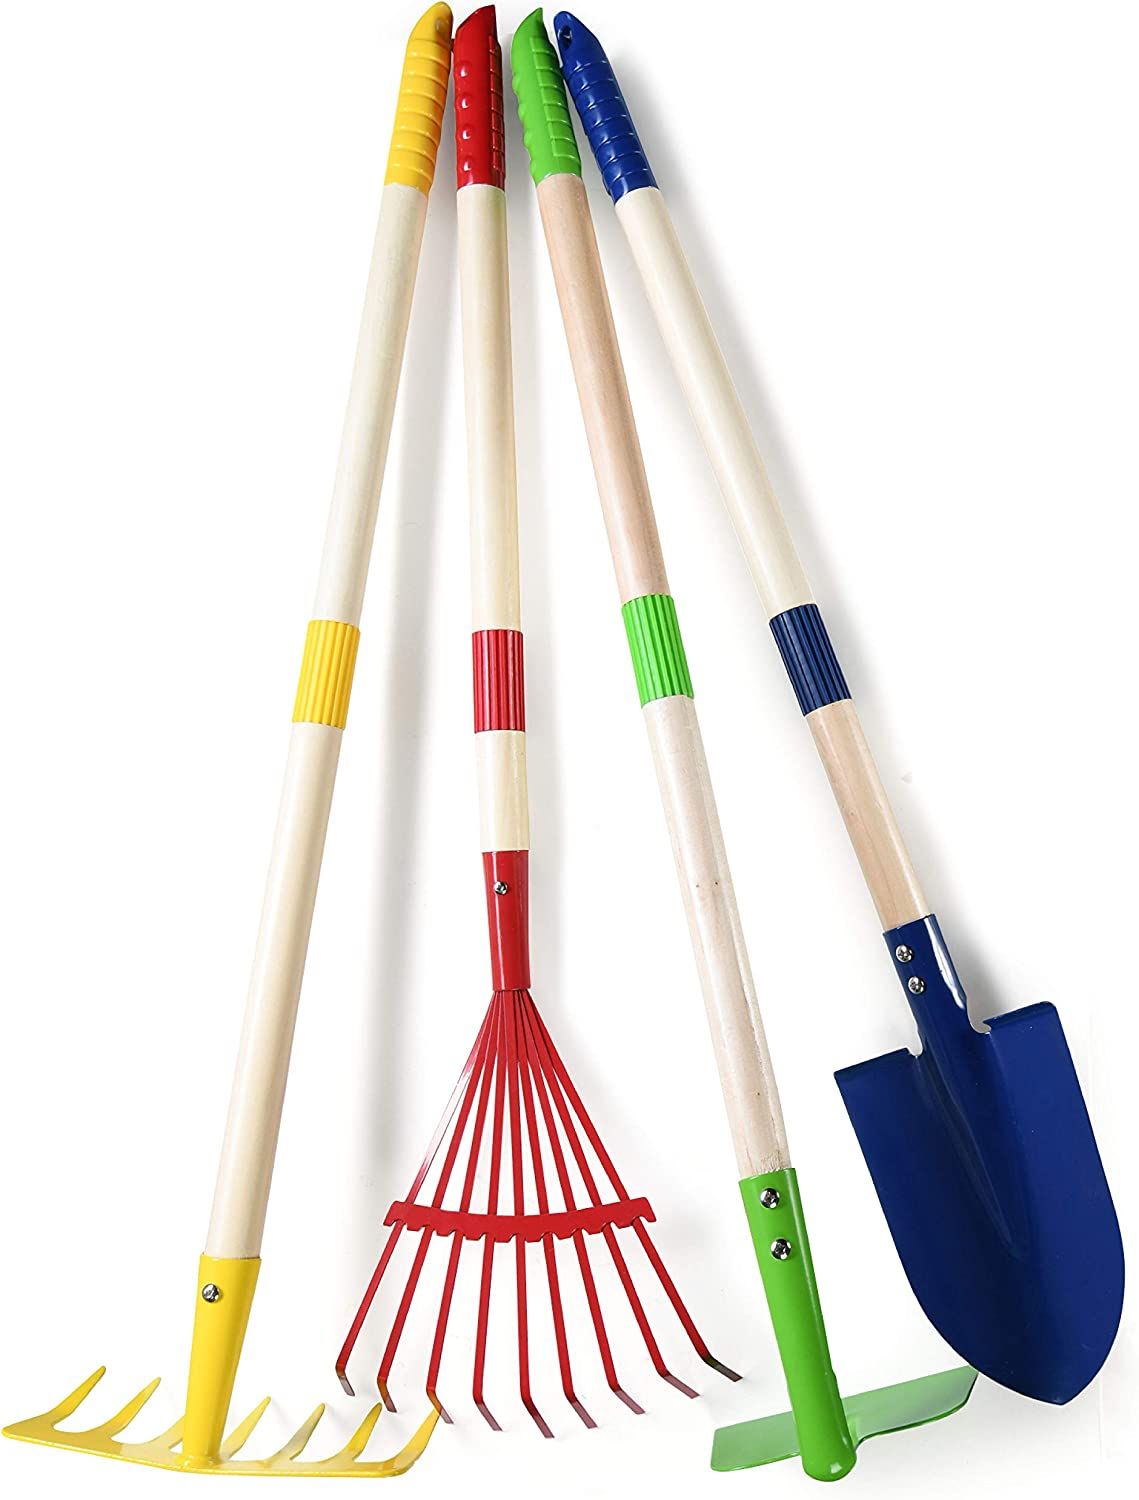 Play22 Kids Garden Tool Set Toy 4-Piece - Shovel, Rake, Hoe, Leaf Rake, Wooden Gardening Tools for Kids Best Outdoor Toys Gift for Boys and Girls